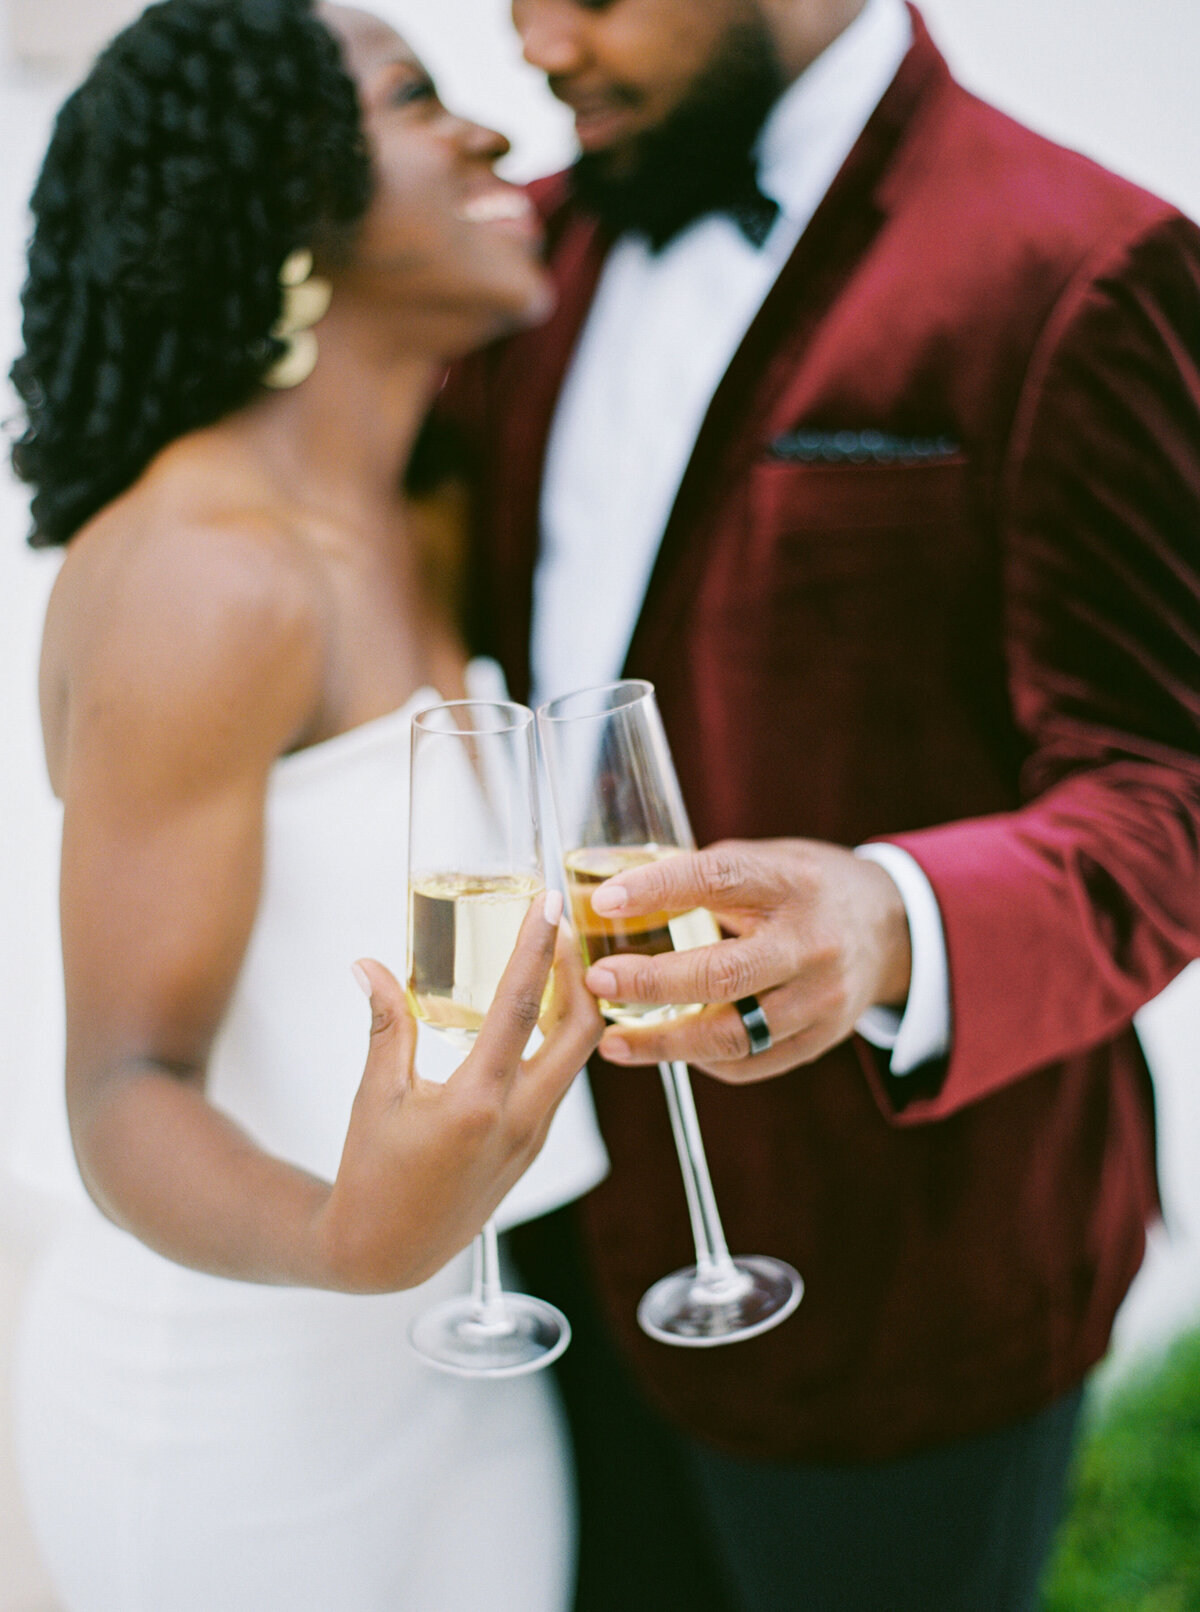 Wedding Champagne Glasses - Bride & Groom Toasting